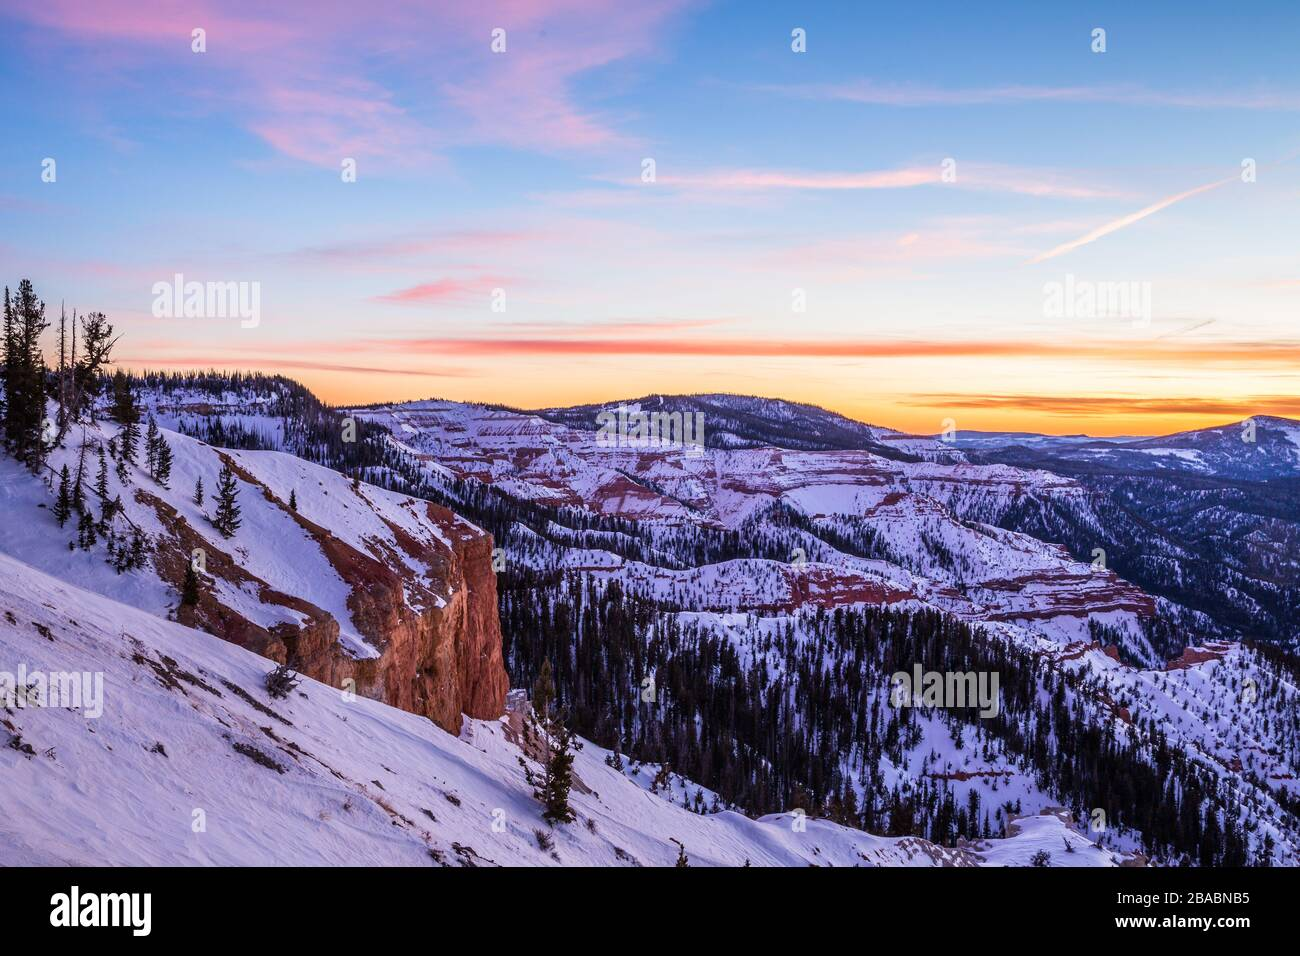 Pink and orange colorful clouds overhead at sunset. Below, orange and red rock covered in snow in Southern Utah winter scene. Stock Photo